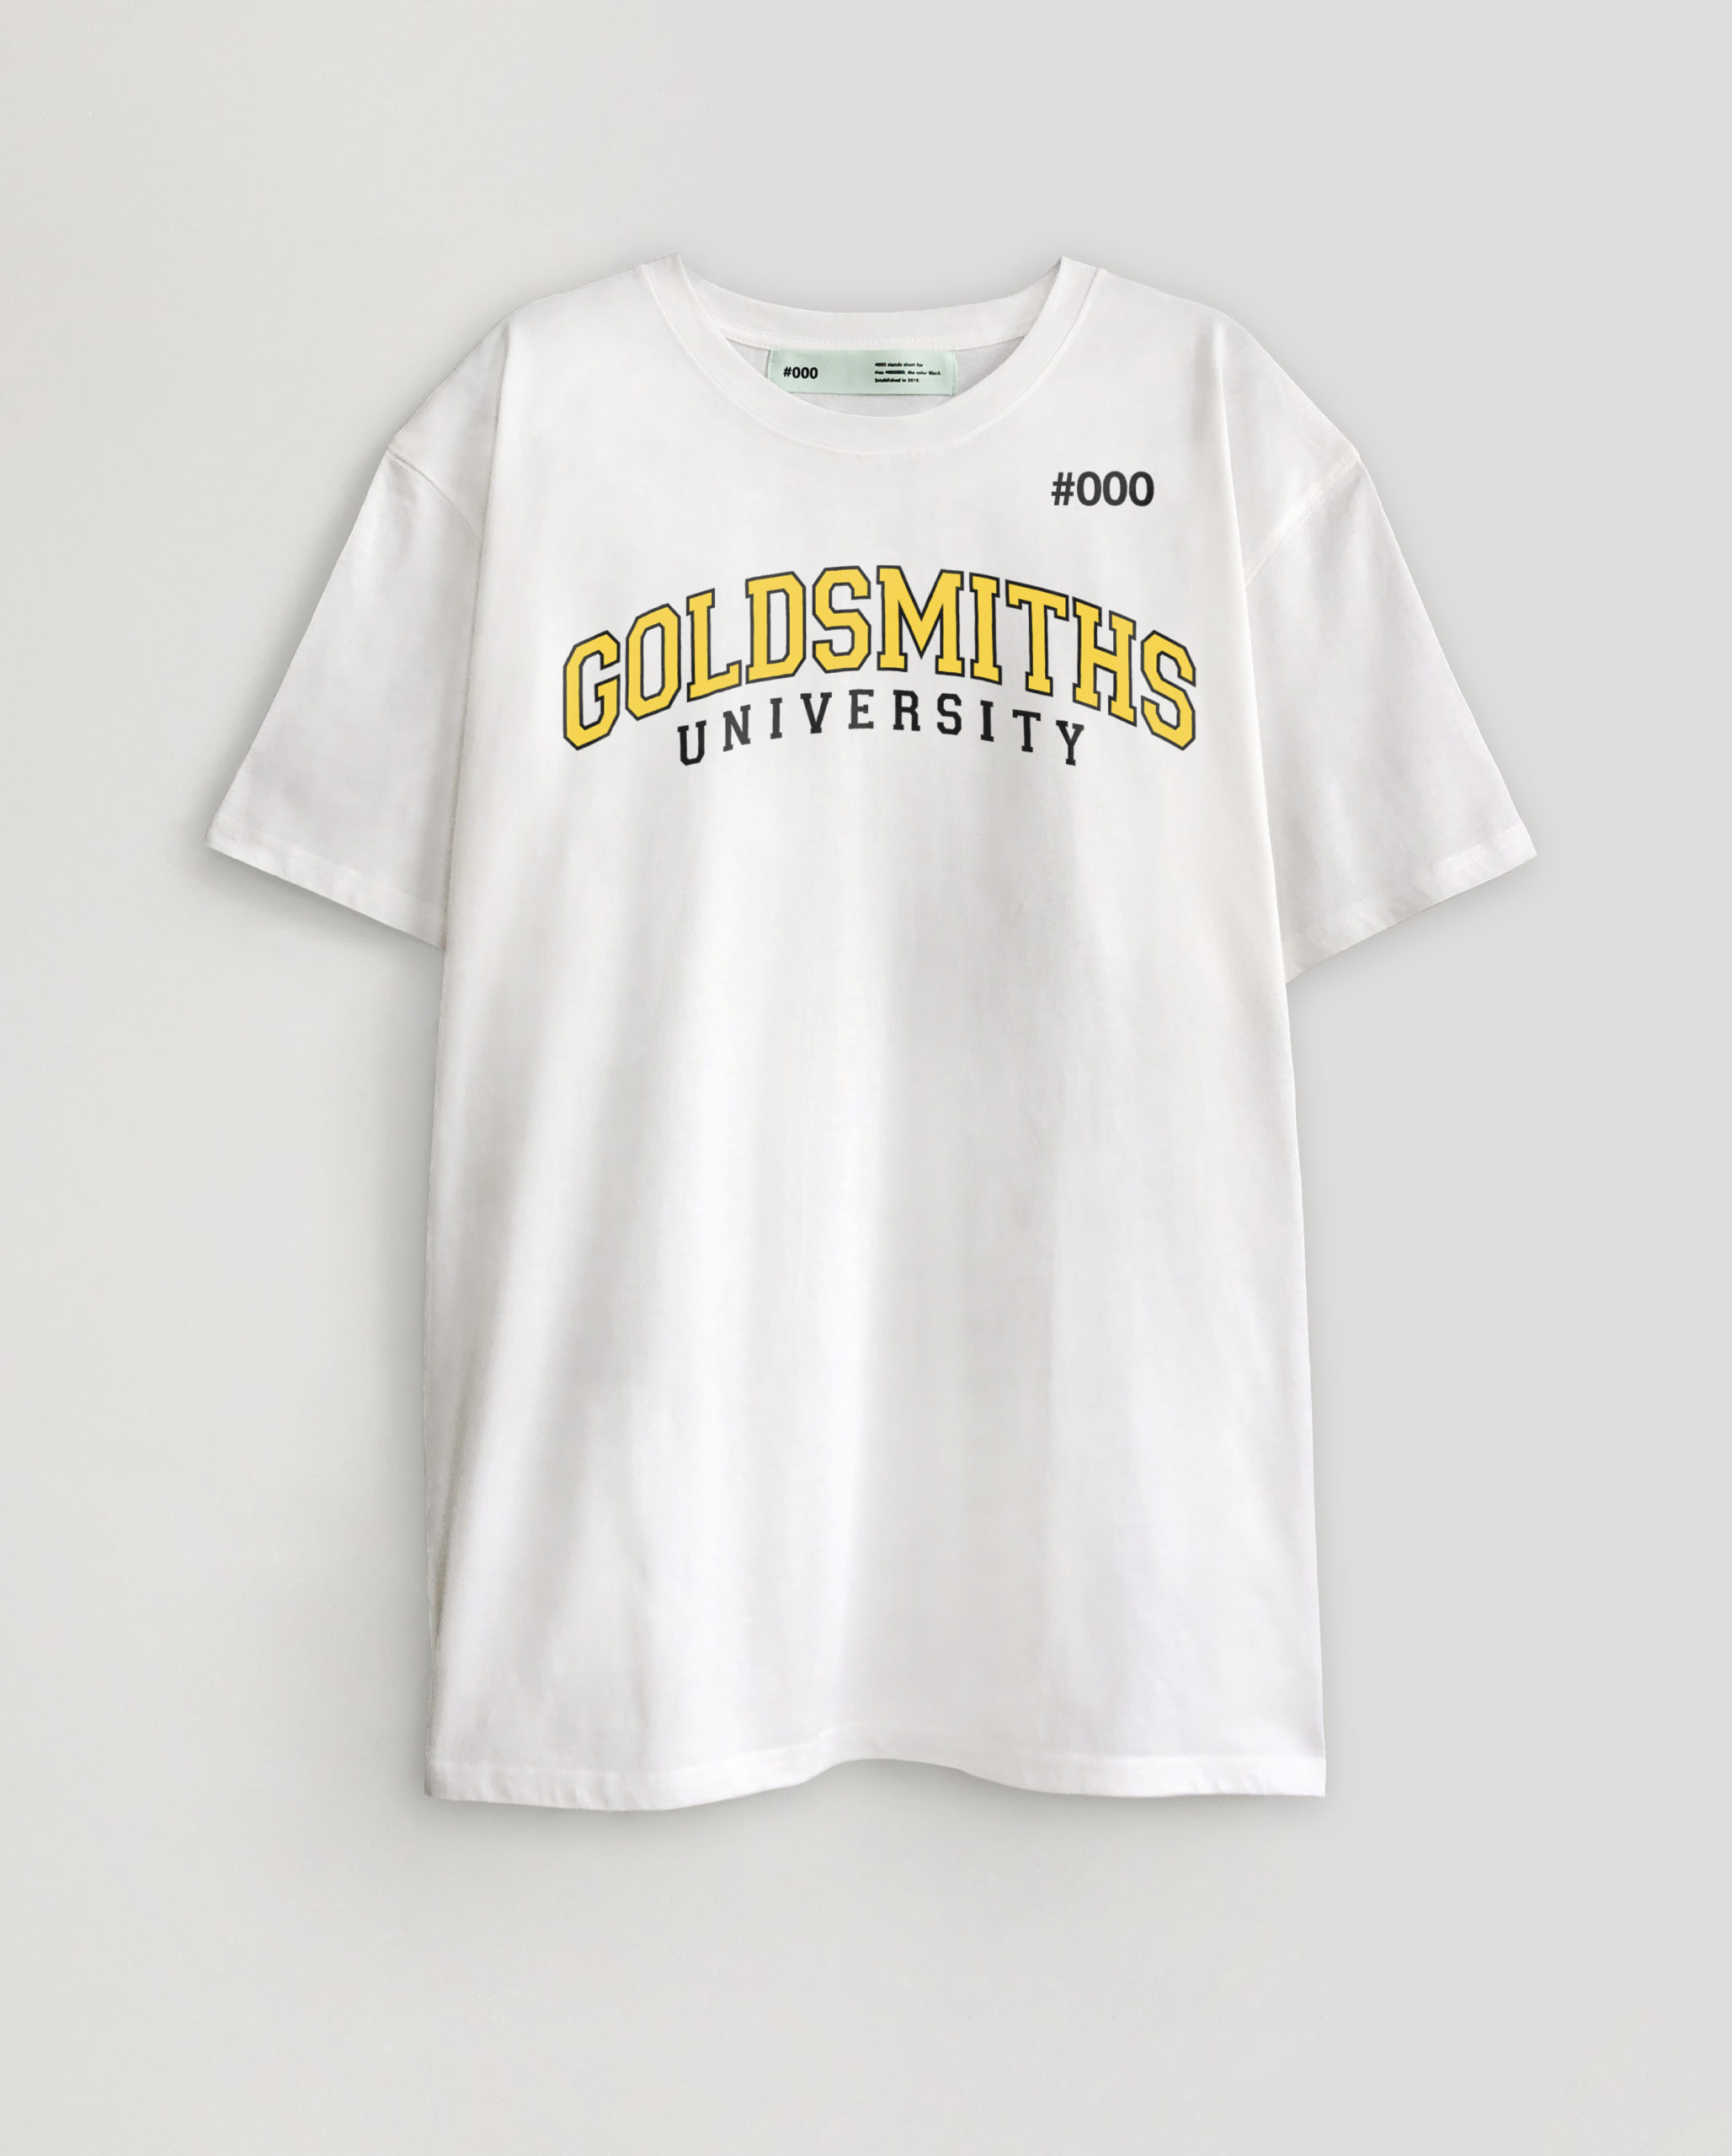 #000 X GOLDSMITHS T-SHIRT #7YELLOW